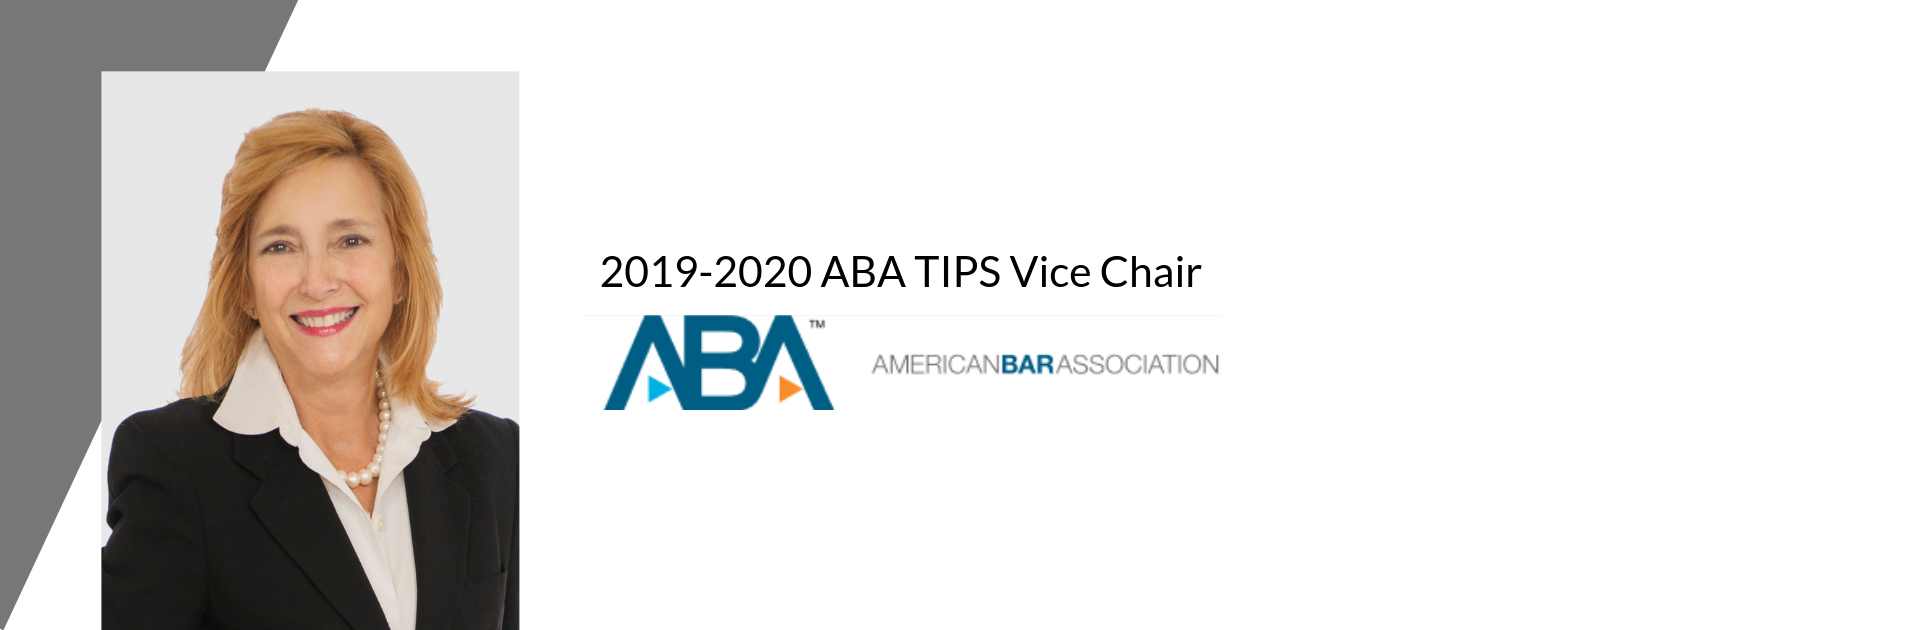 Coats Rose Director Elected a Vice Chair of the American Bar Association's Commercial Transportation Litigation General Committee for 2019-2020